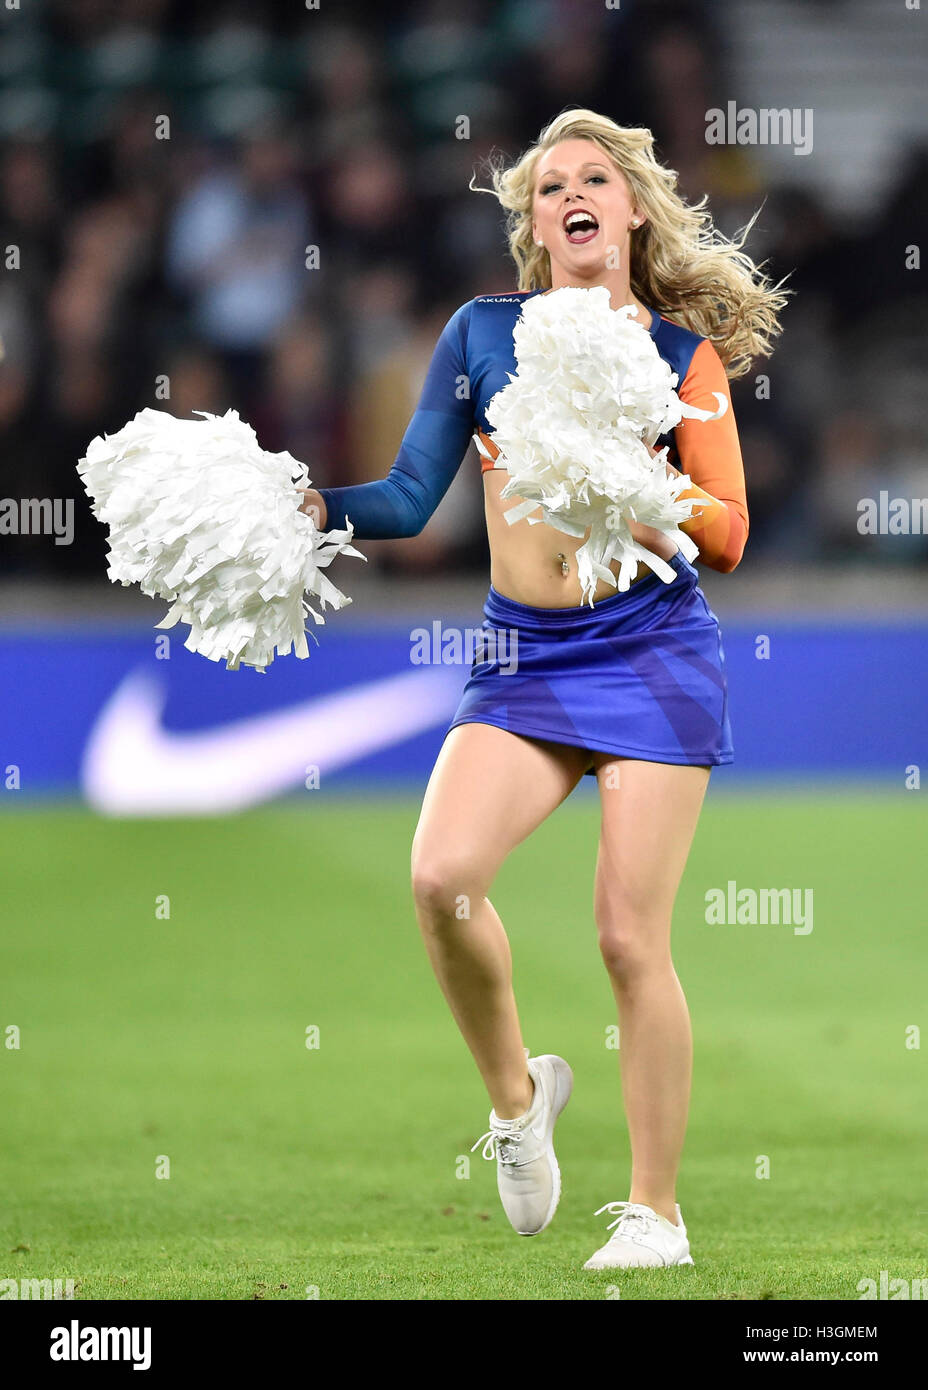 London, UK. 8th October, 2016. cheerleader Australia entertains the crowds during the half-time break at Rugby Championship - Stock Image